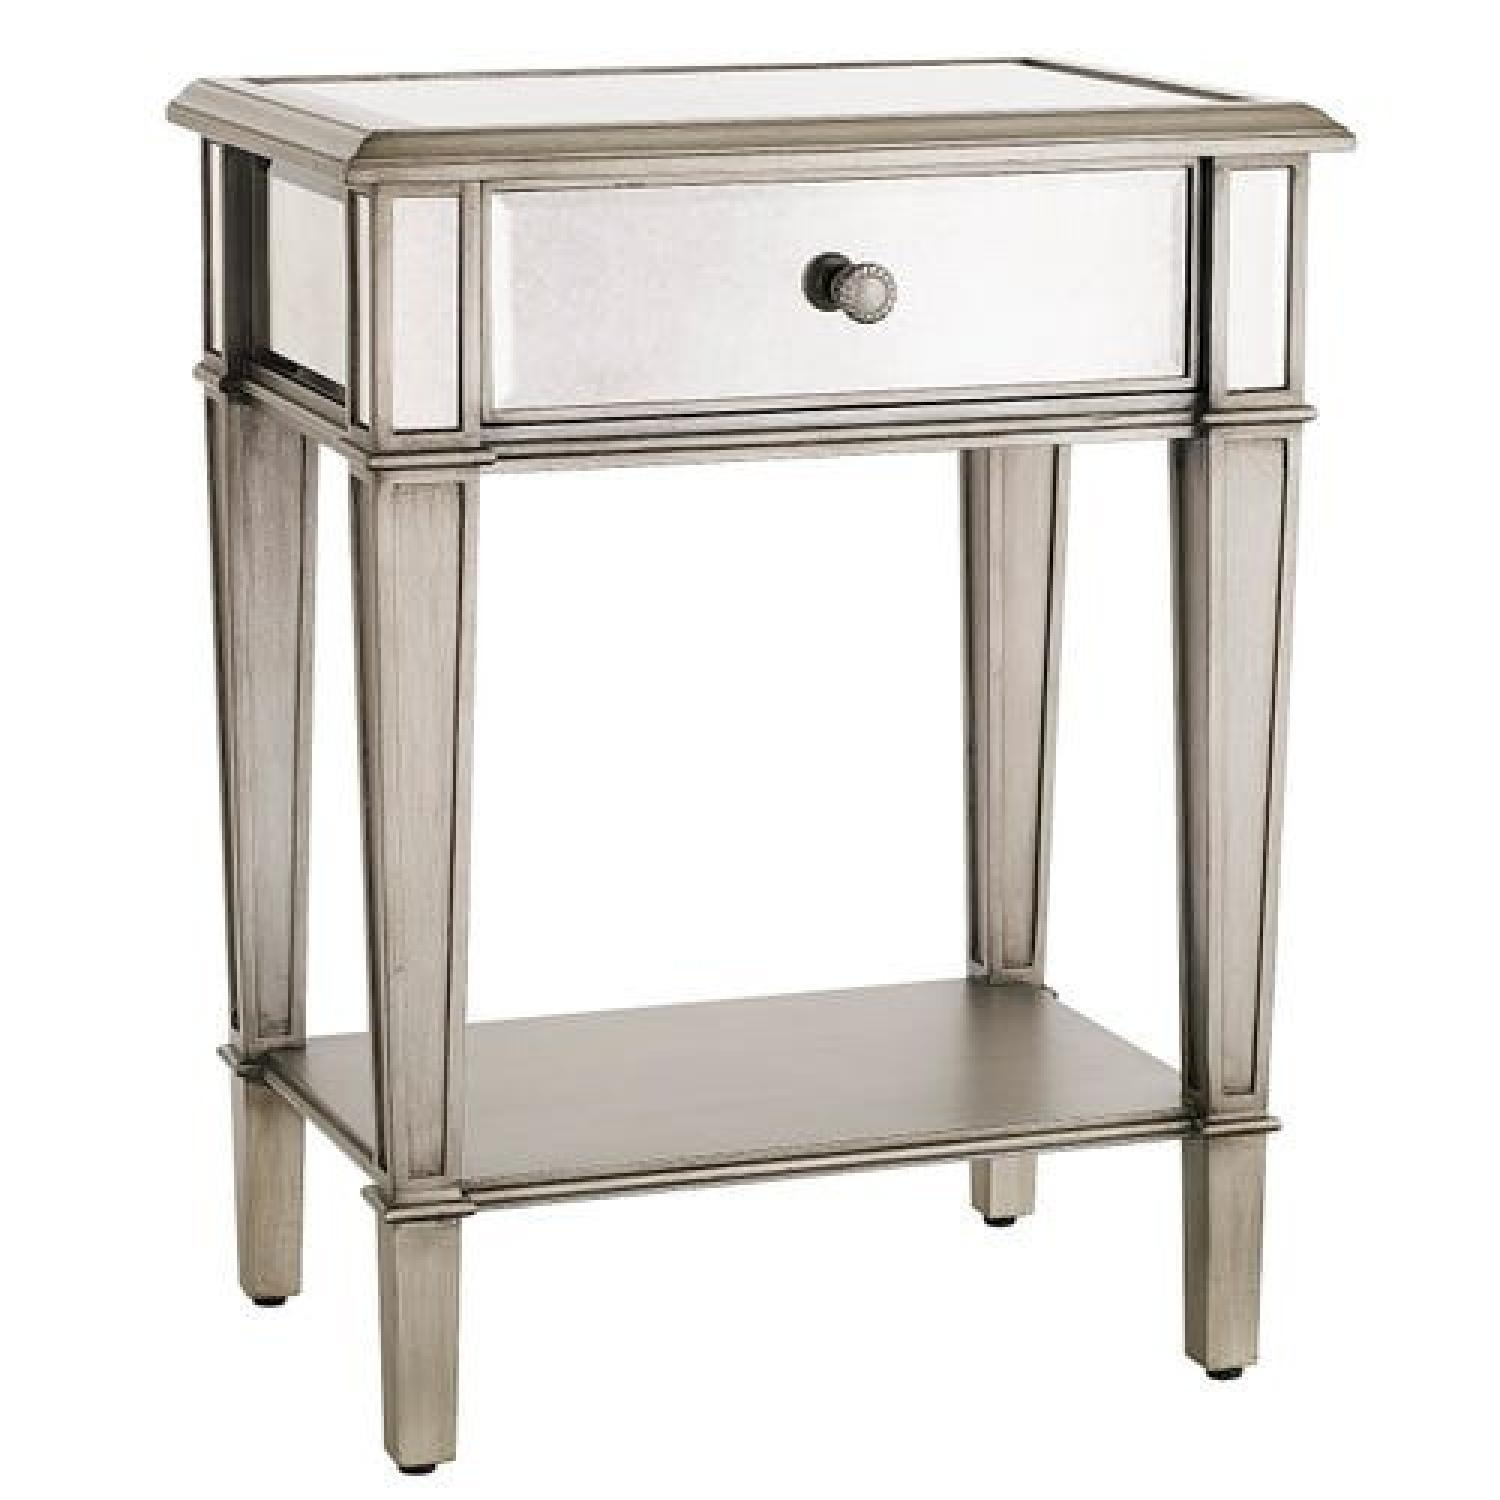 Pier 1 Hayworth Nightstands - image-0